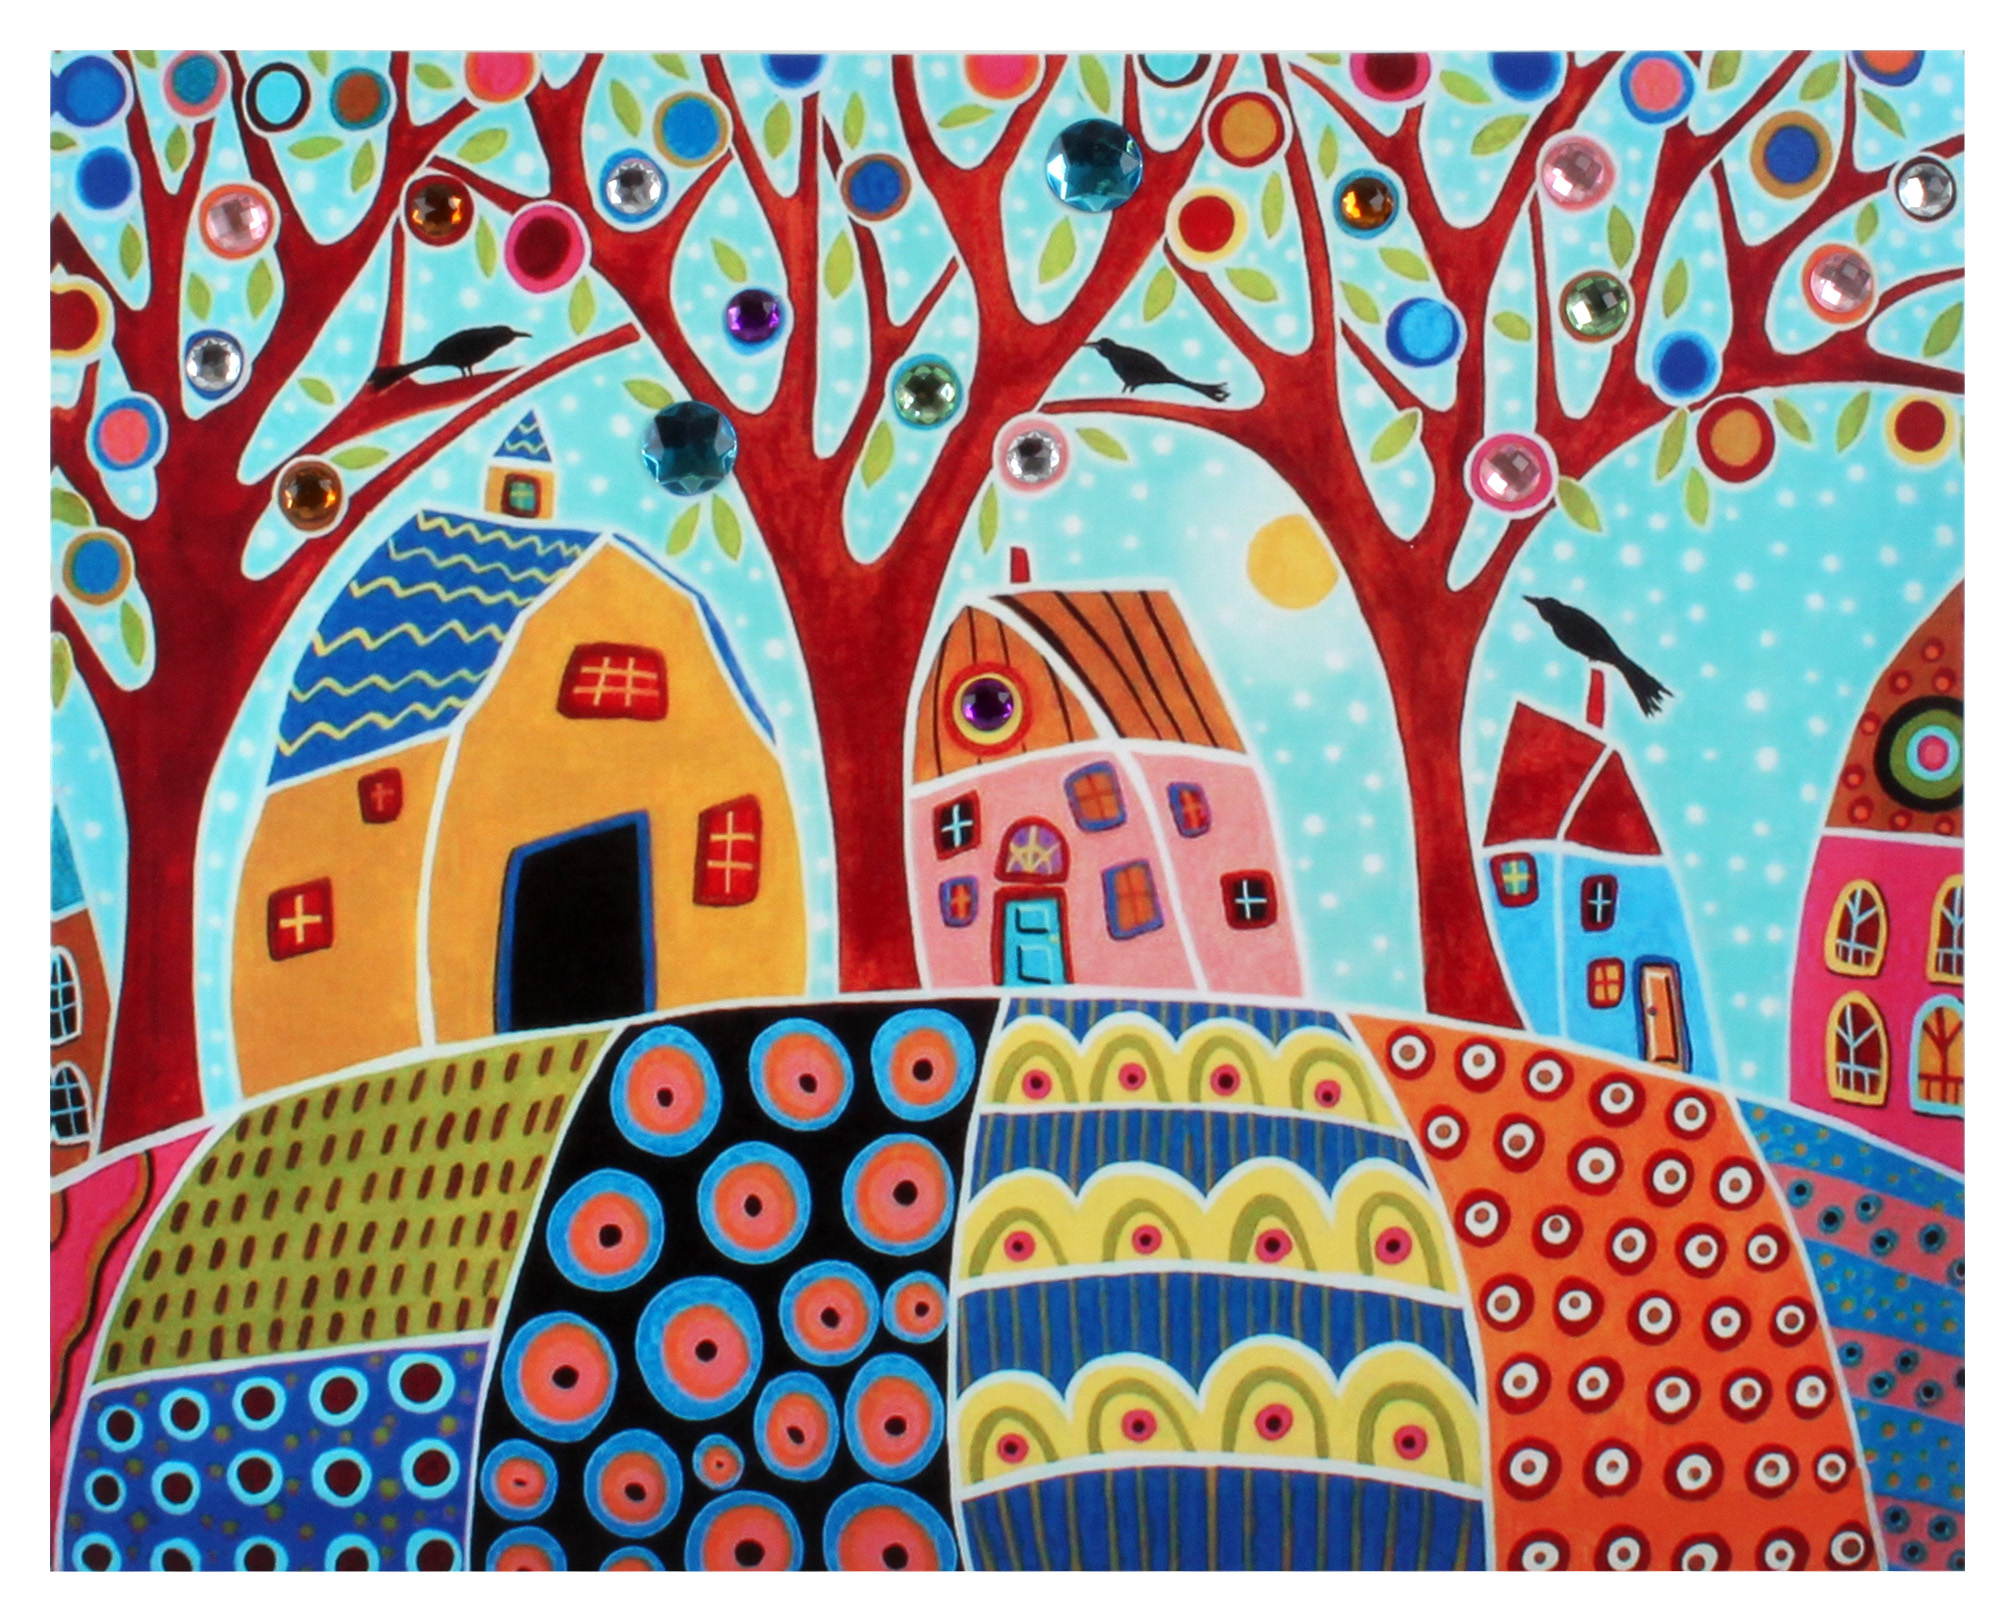 €18 WALL PAINTING PRINTED CANVAS W/STONES 50Χ2Χ40